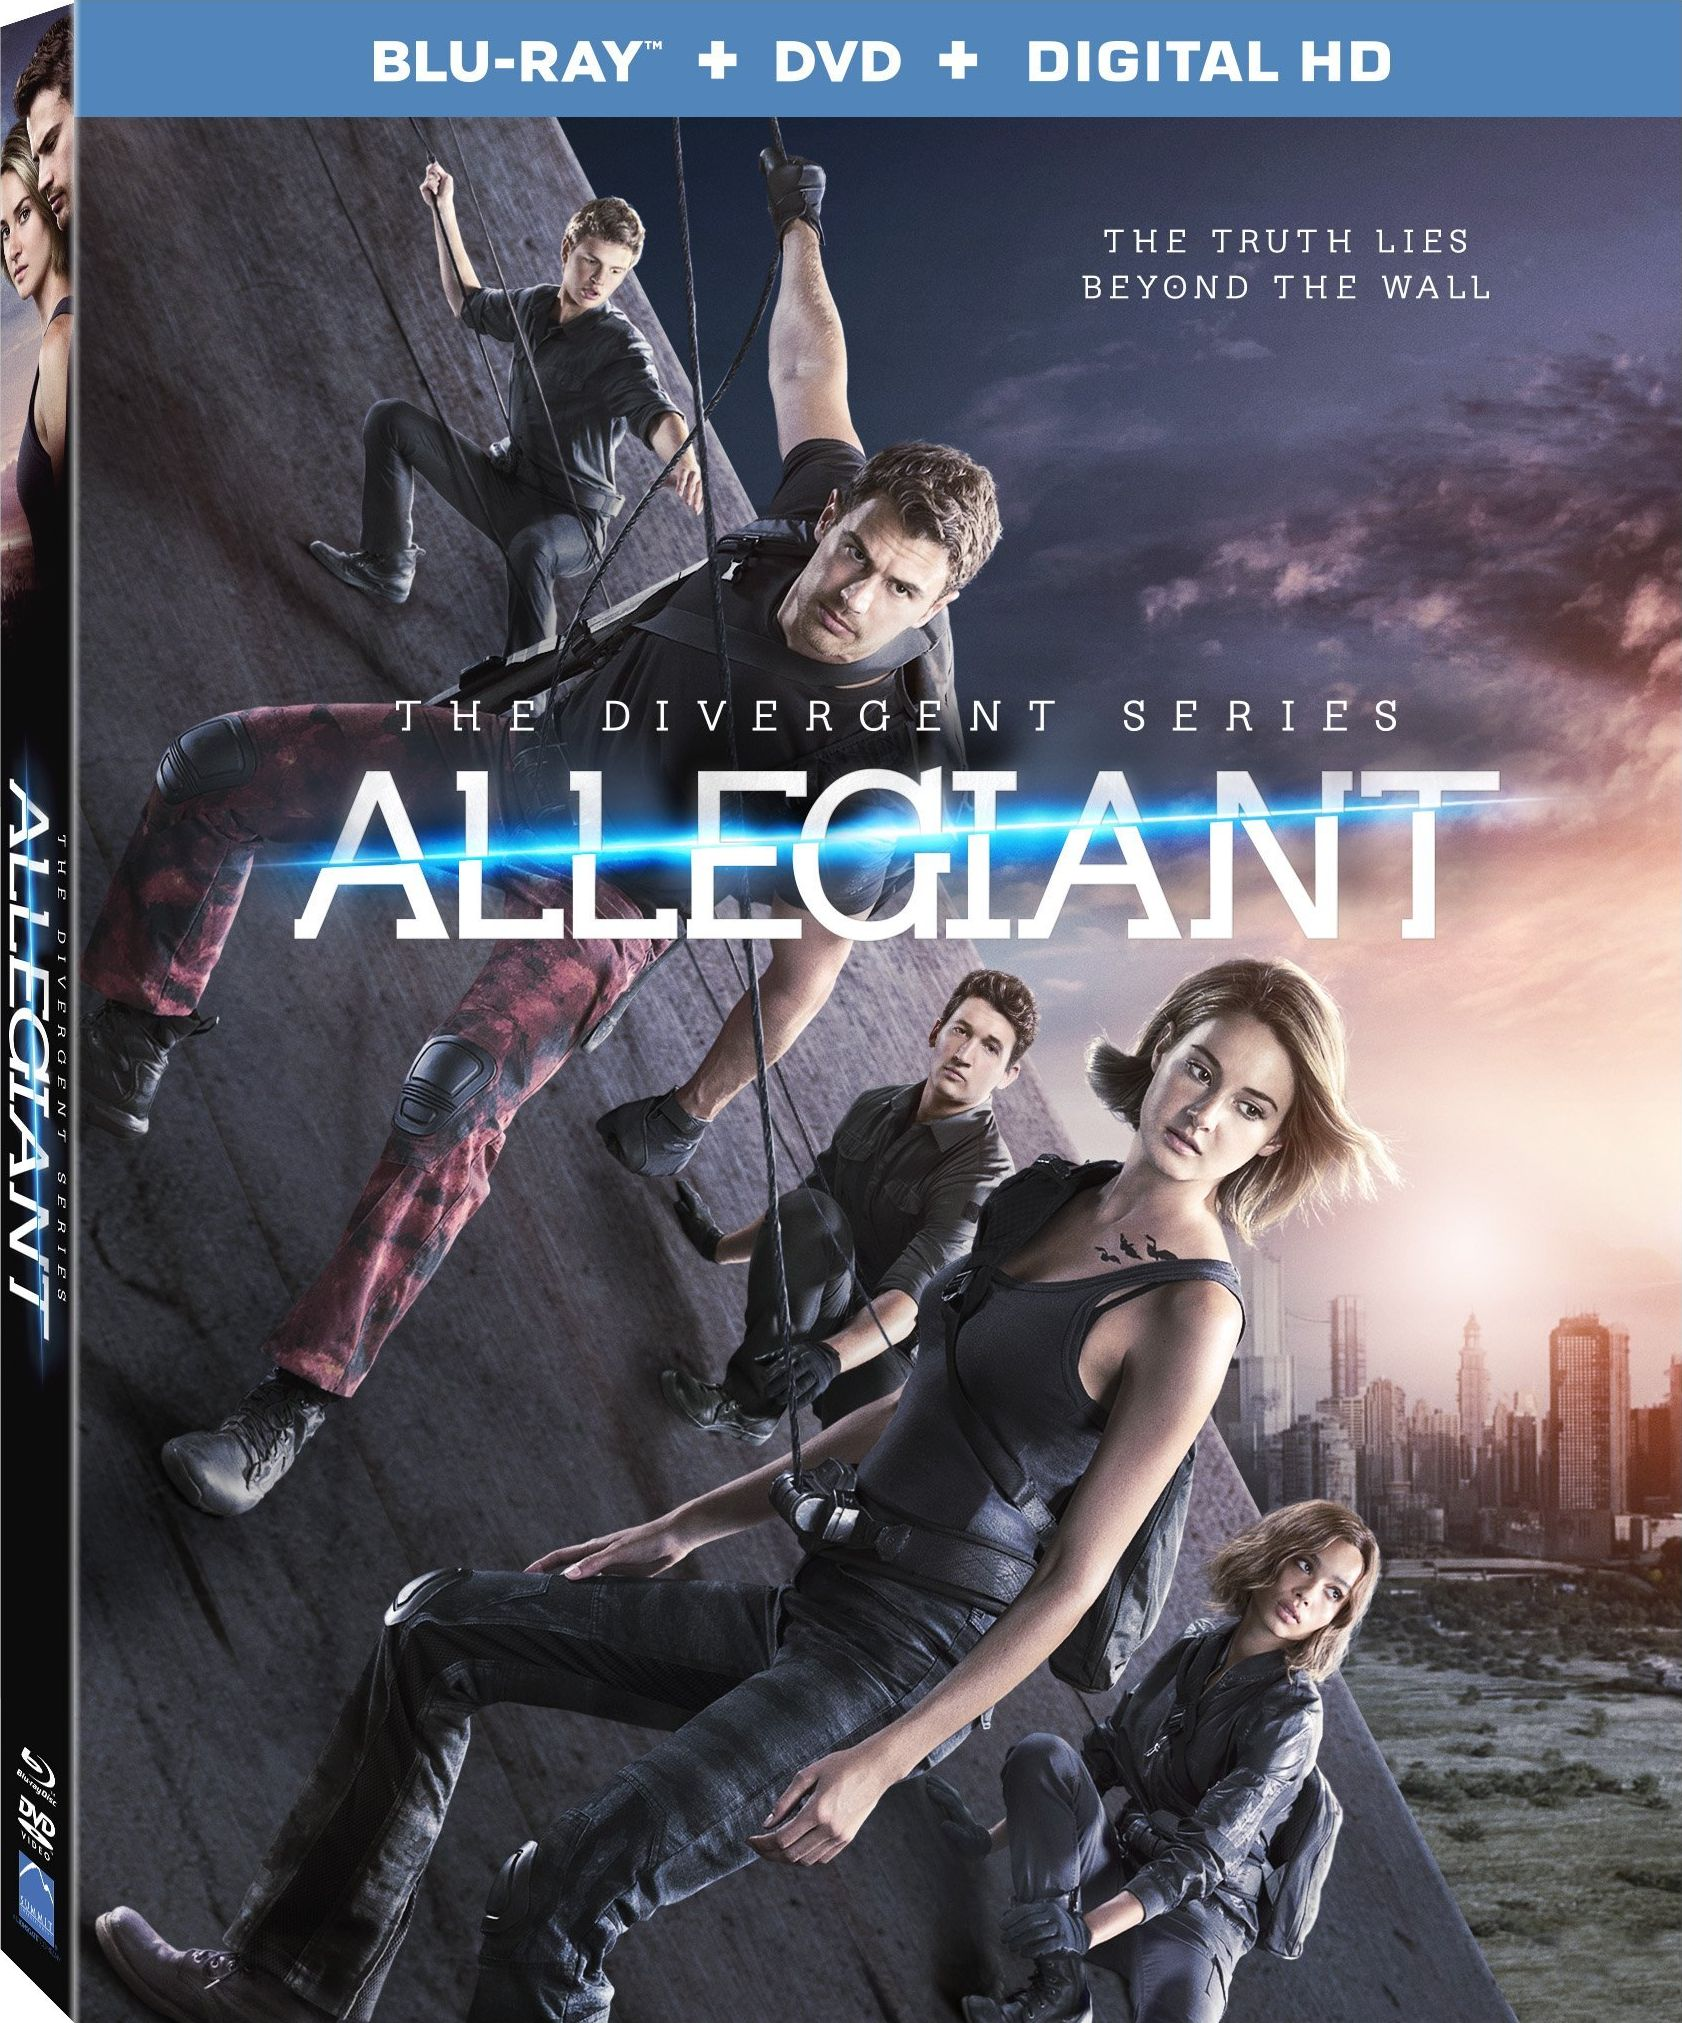 The Divergent Series Allegiant DVD Release Date July 12 2016